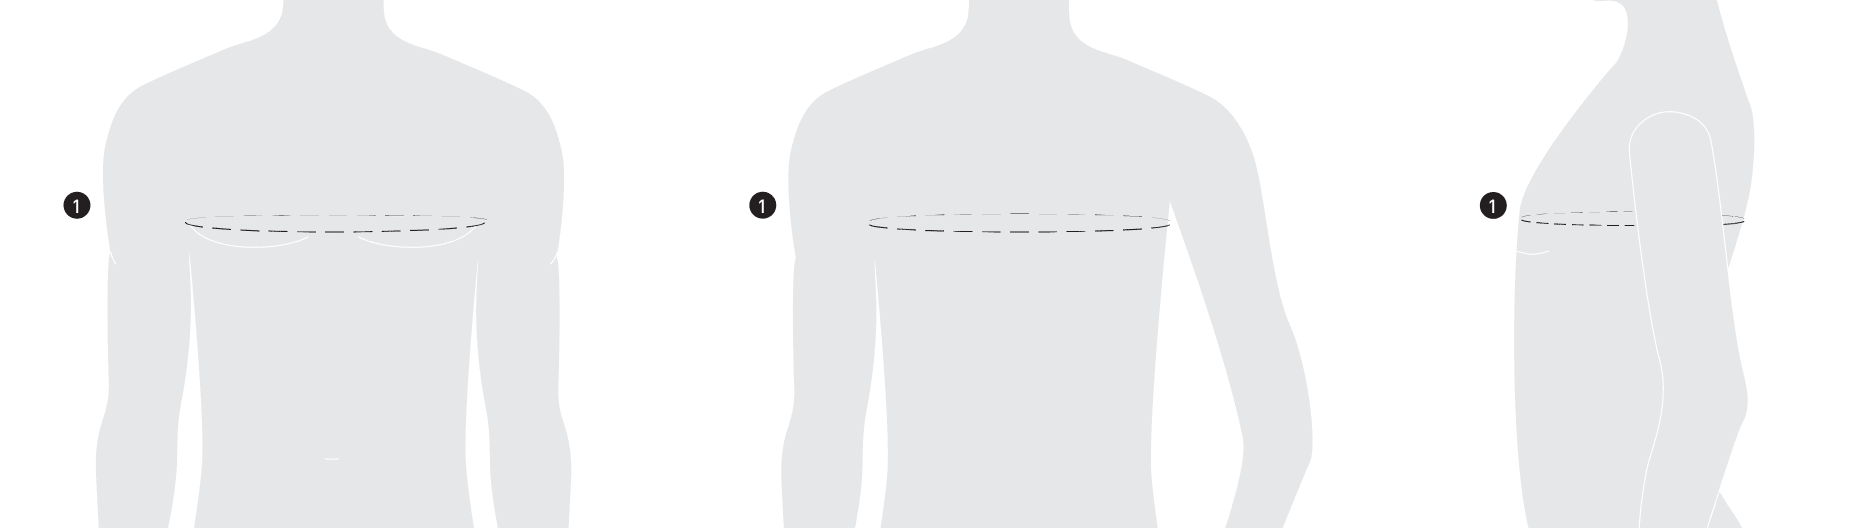 Norrøna size guide - find your perfect fit - Norrøna®